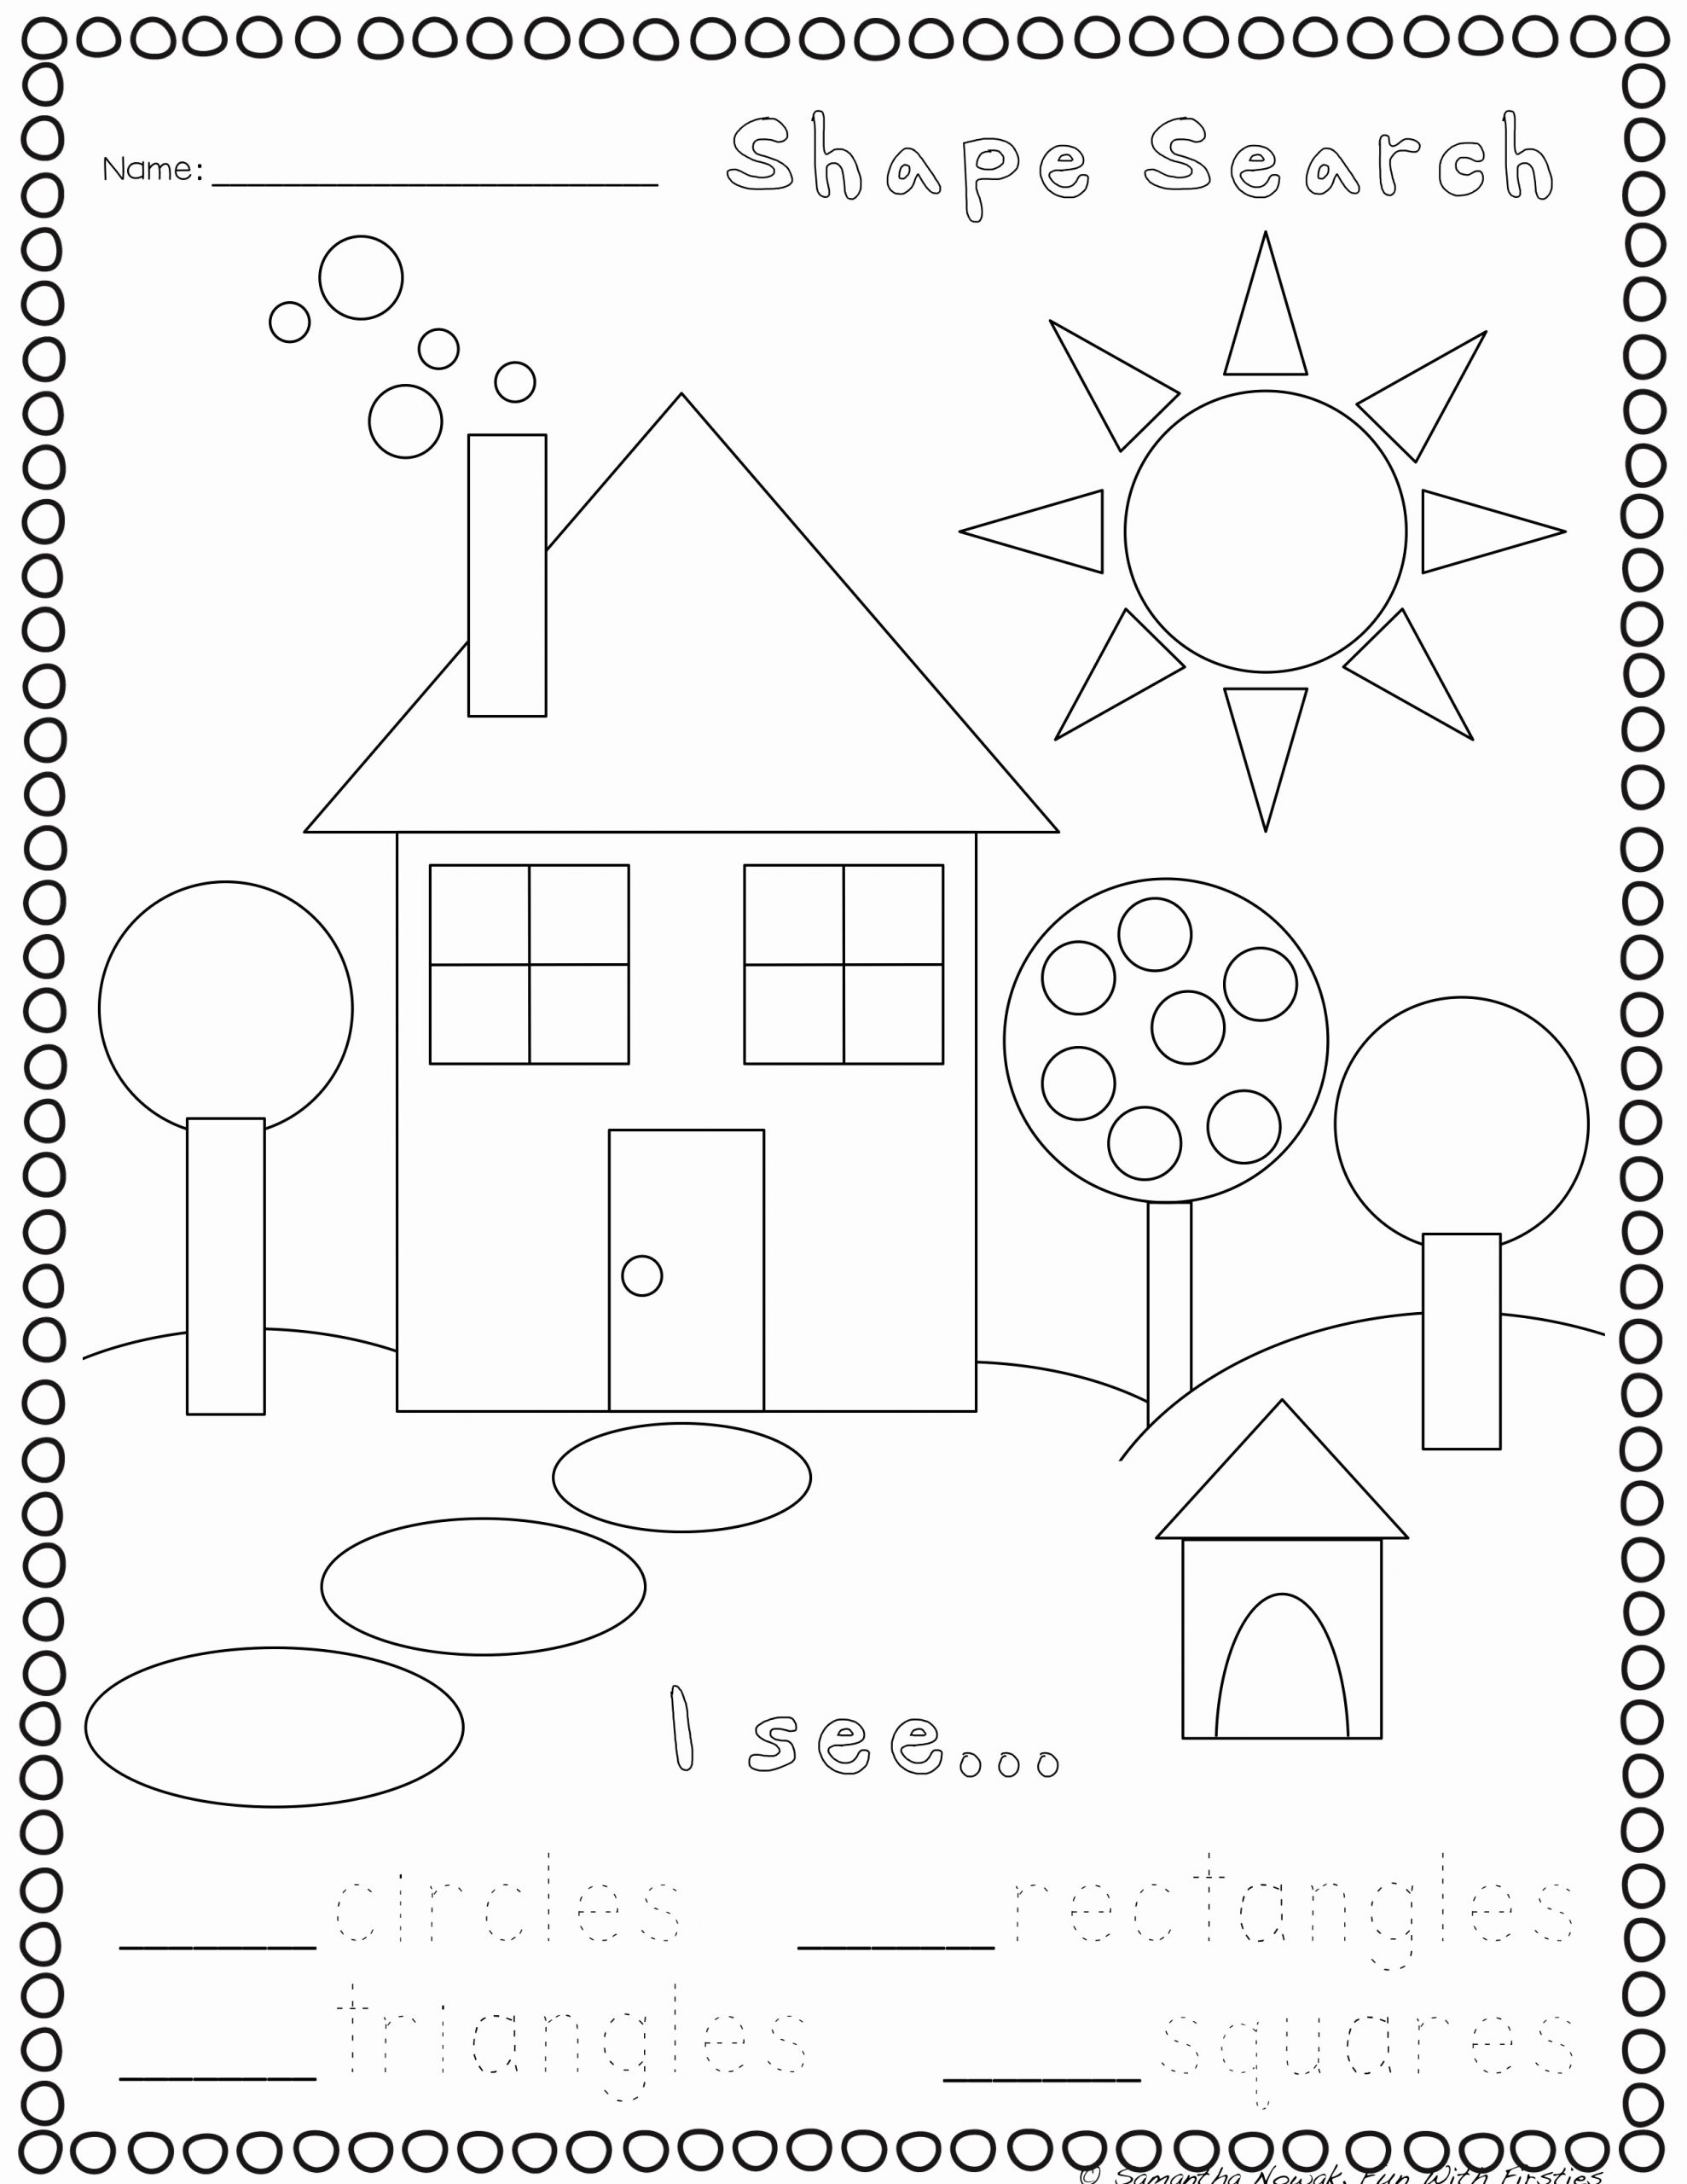 Geometric Shapes Patterns Worksheets Awesome Print & Go 2d & 3d Geometry Practice Worksheets